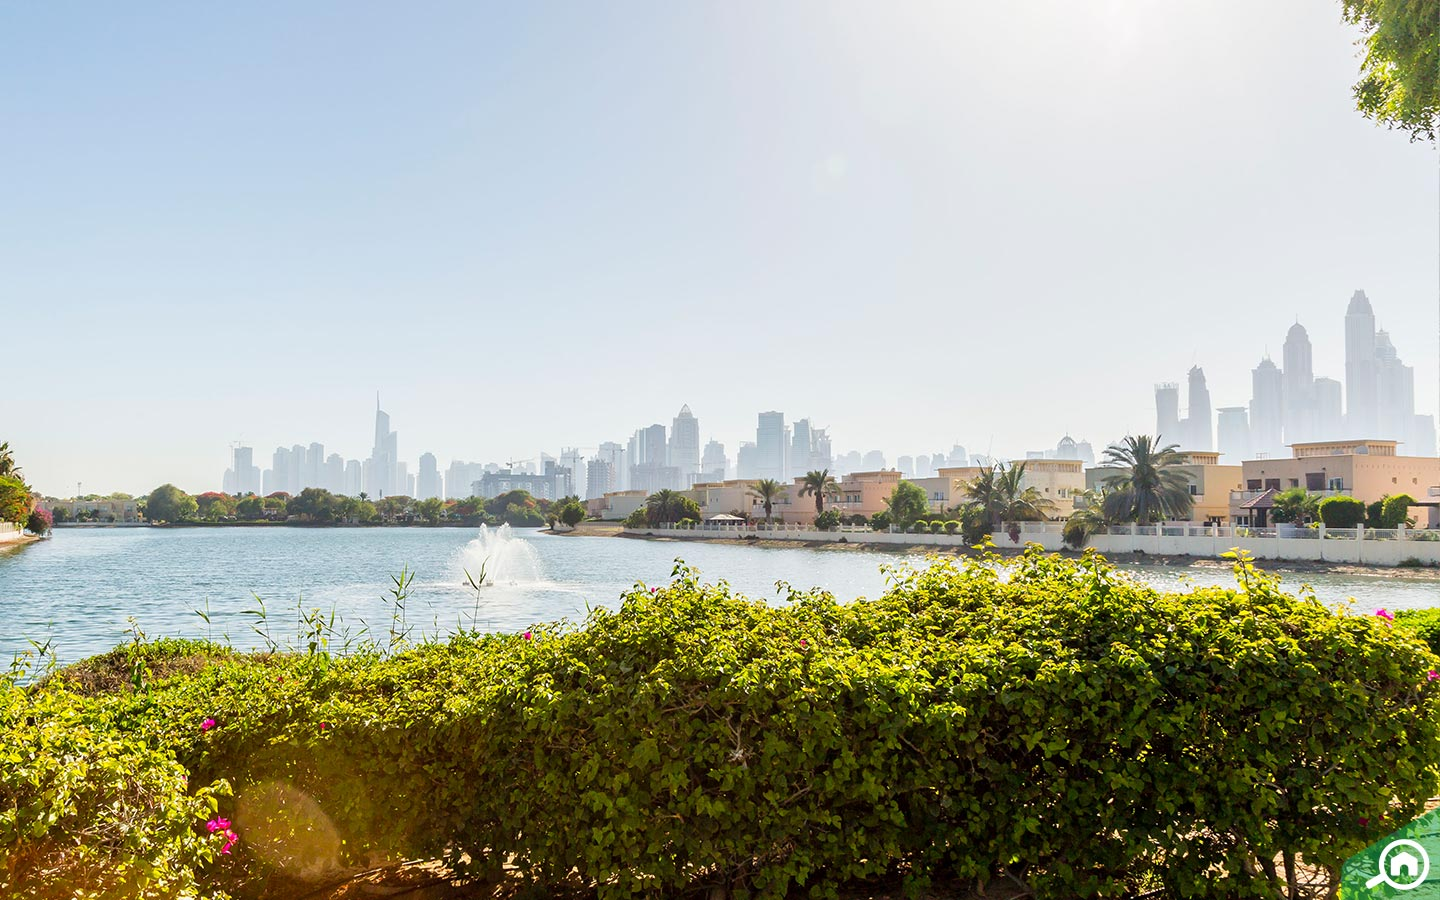 View of The Lakes located next to Emirates Hills